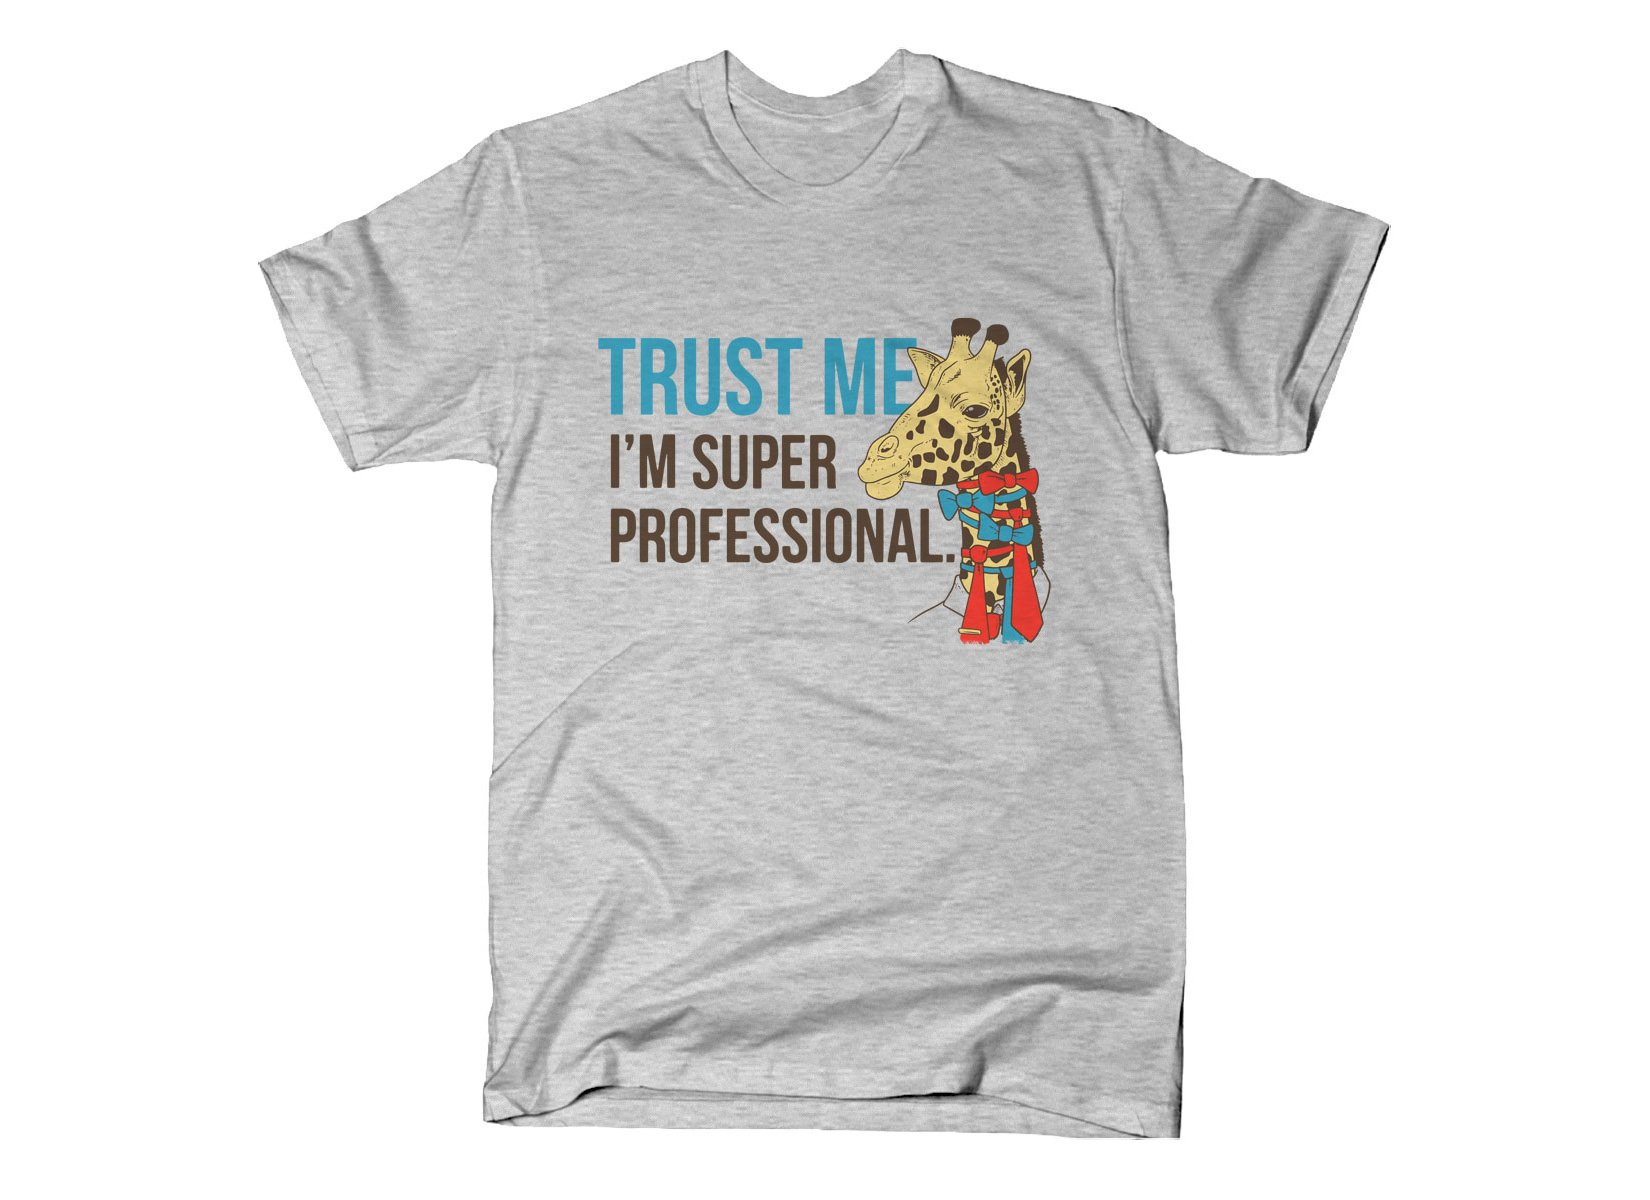 Trust Me I'm Super Professional on Mens T-Shirt